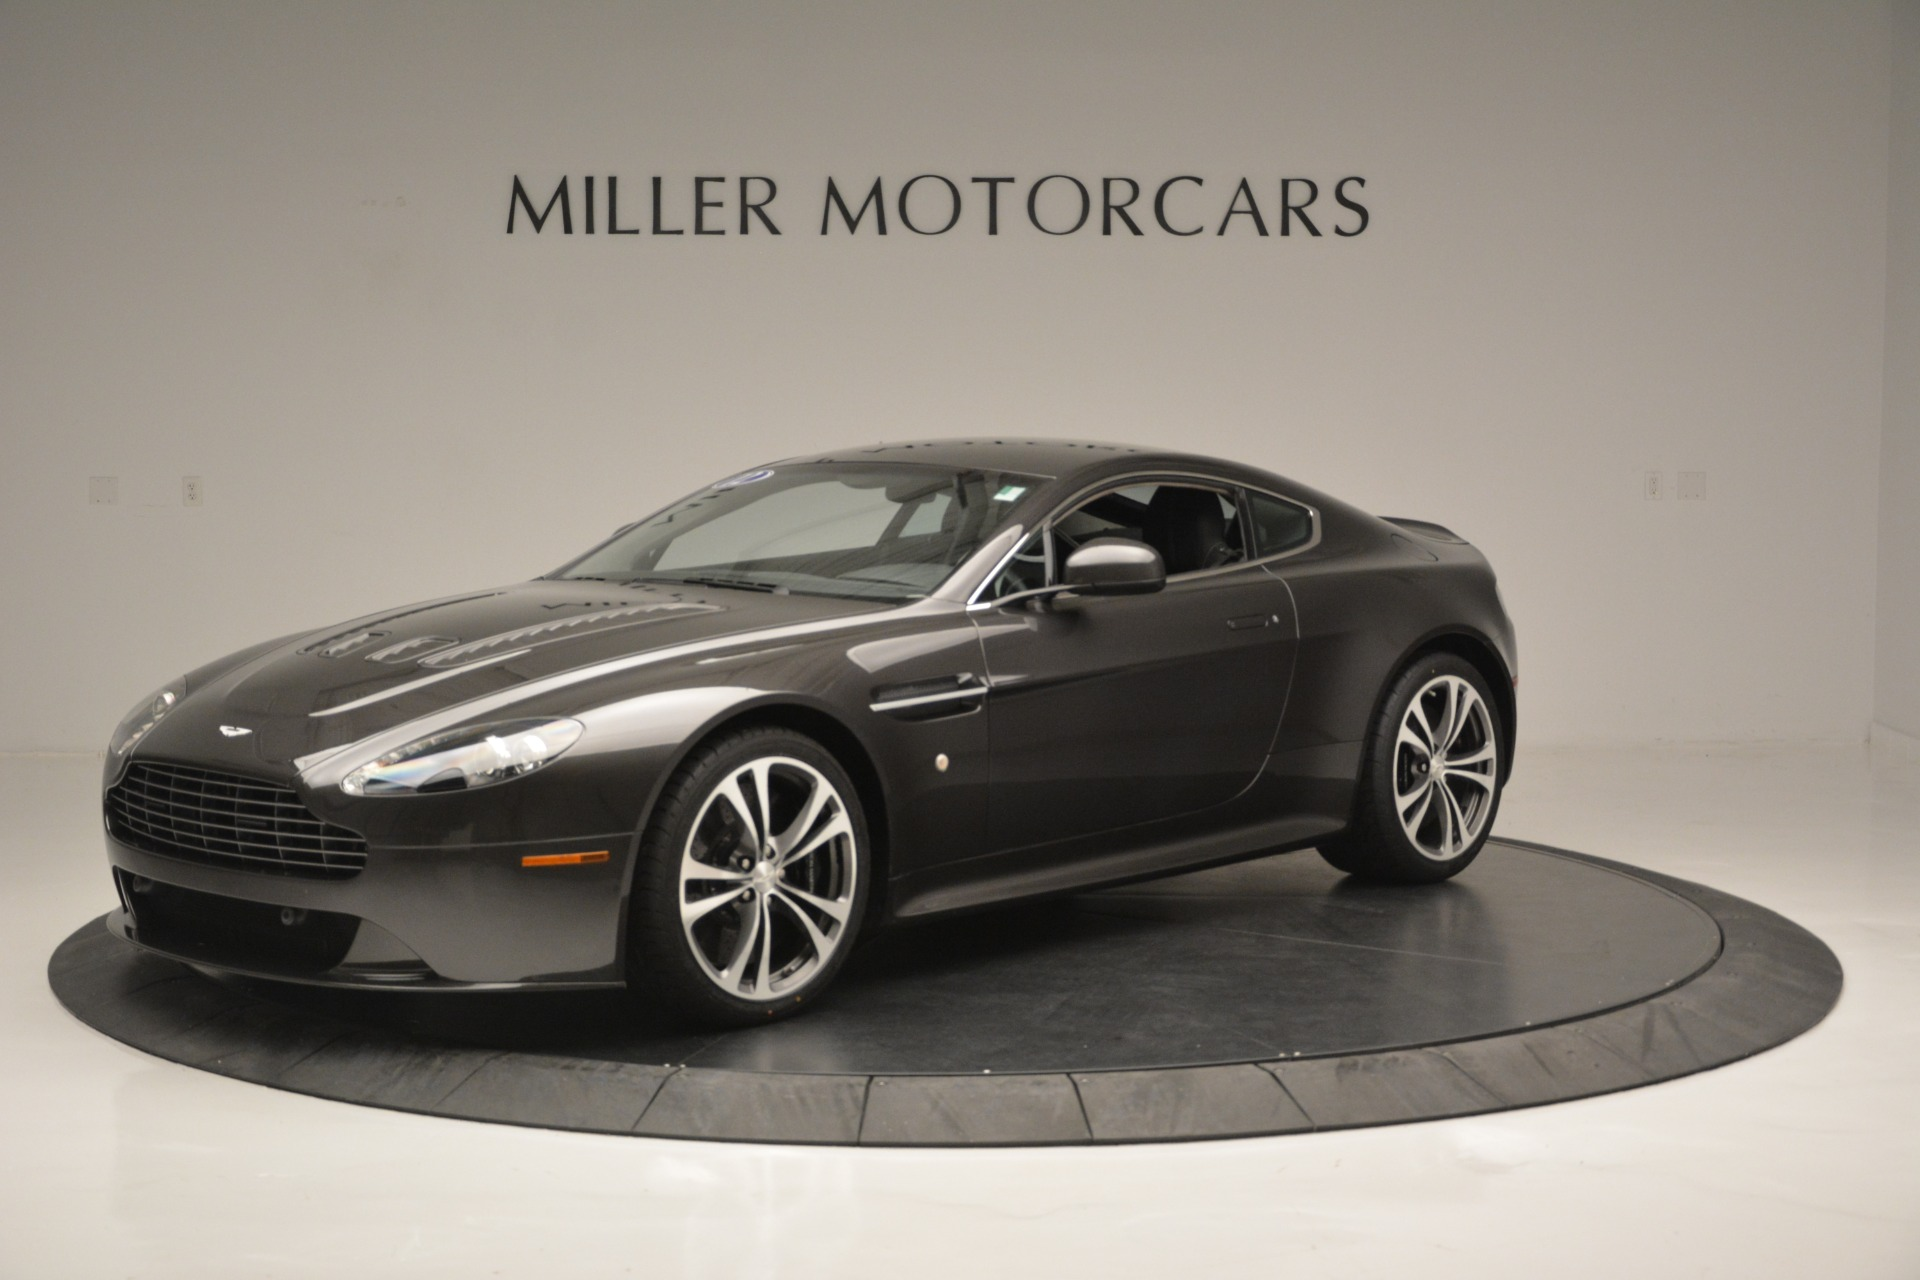 2012 Aston Martin V12 Vantage Stock 7425 for sale near Greenwich